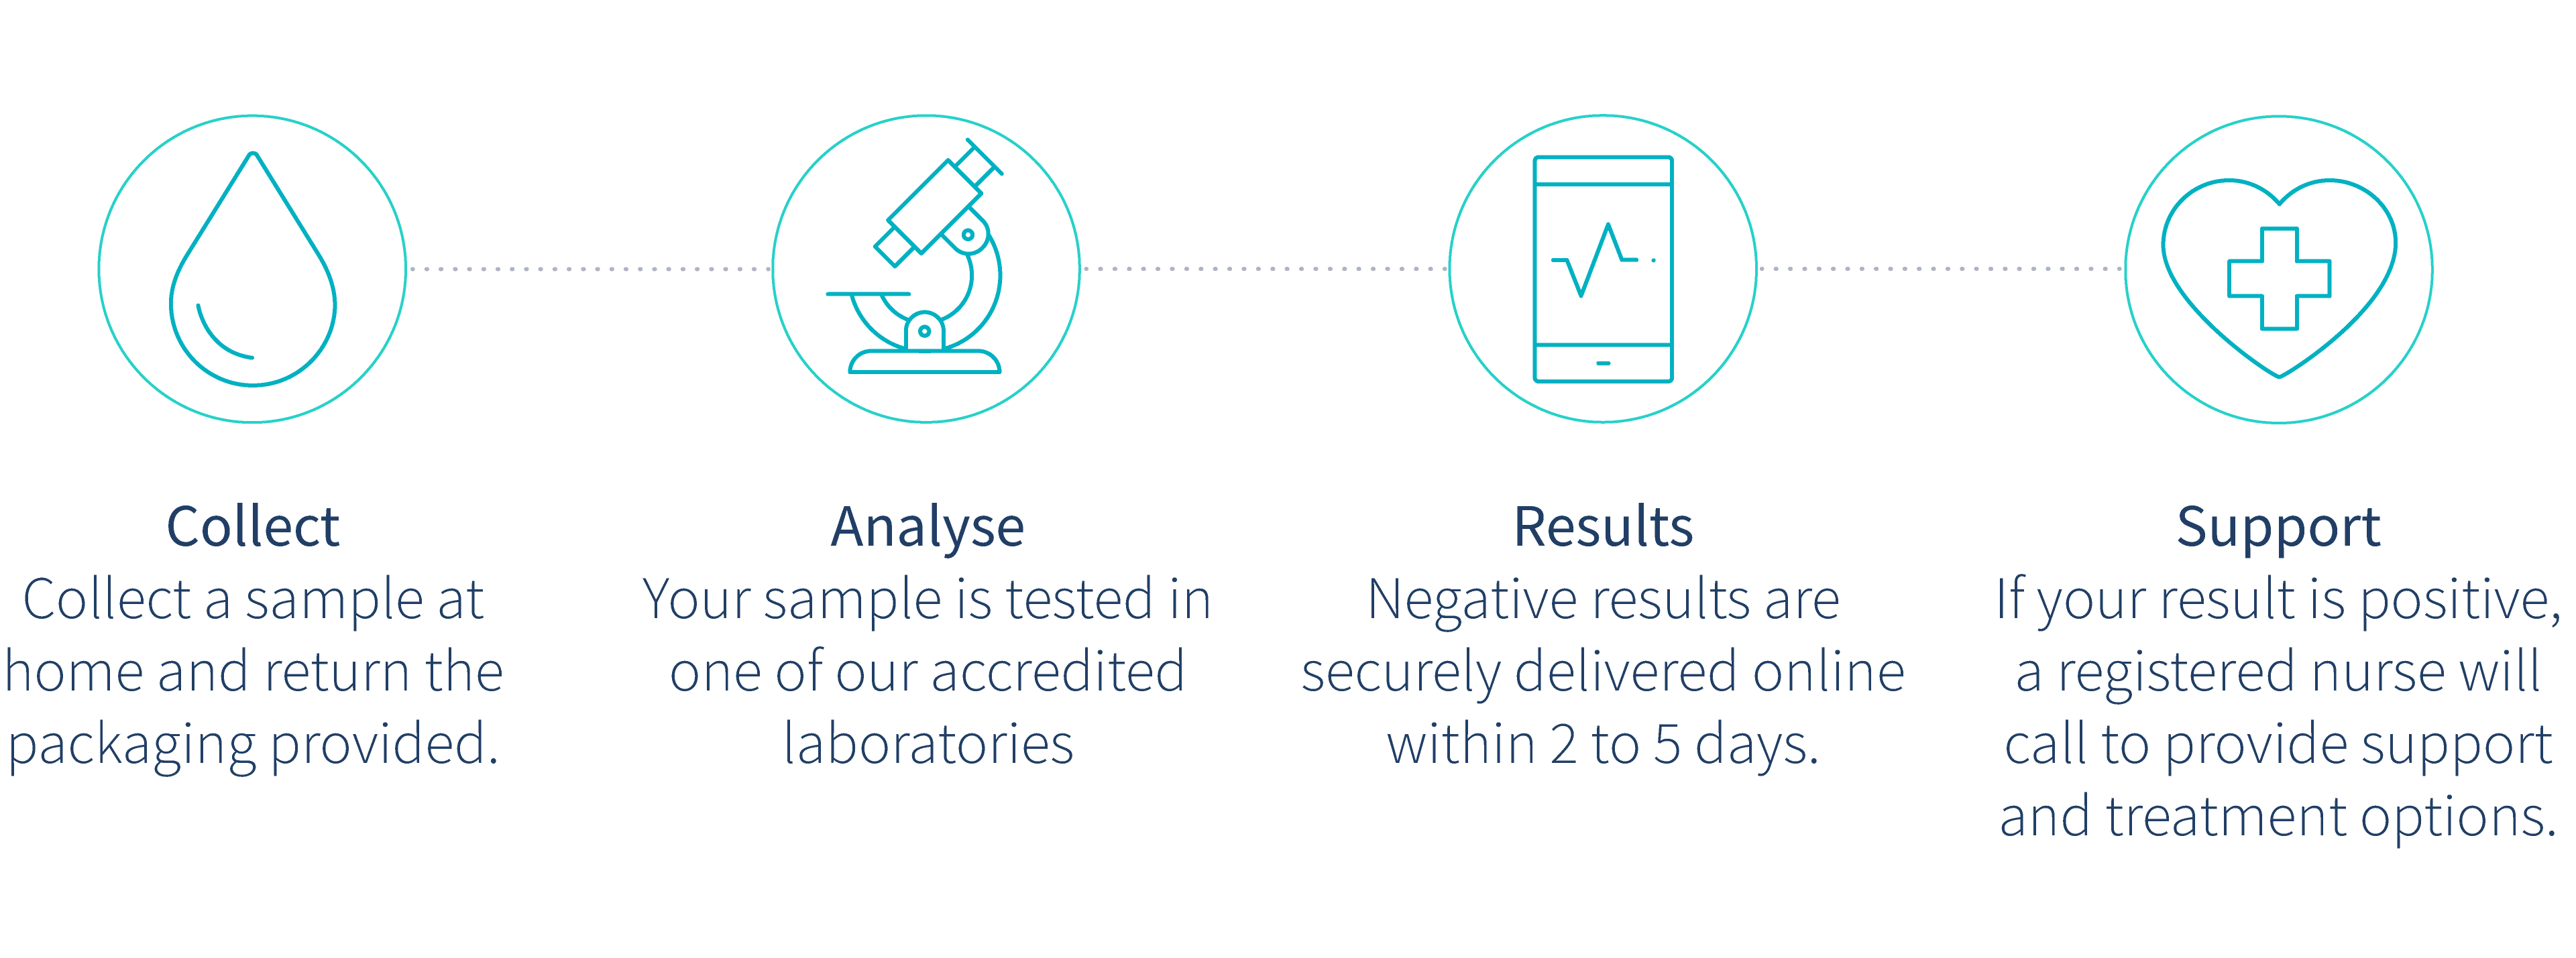 how-does-home-testing-work-letsgetchecked-illustration